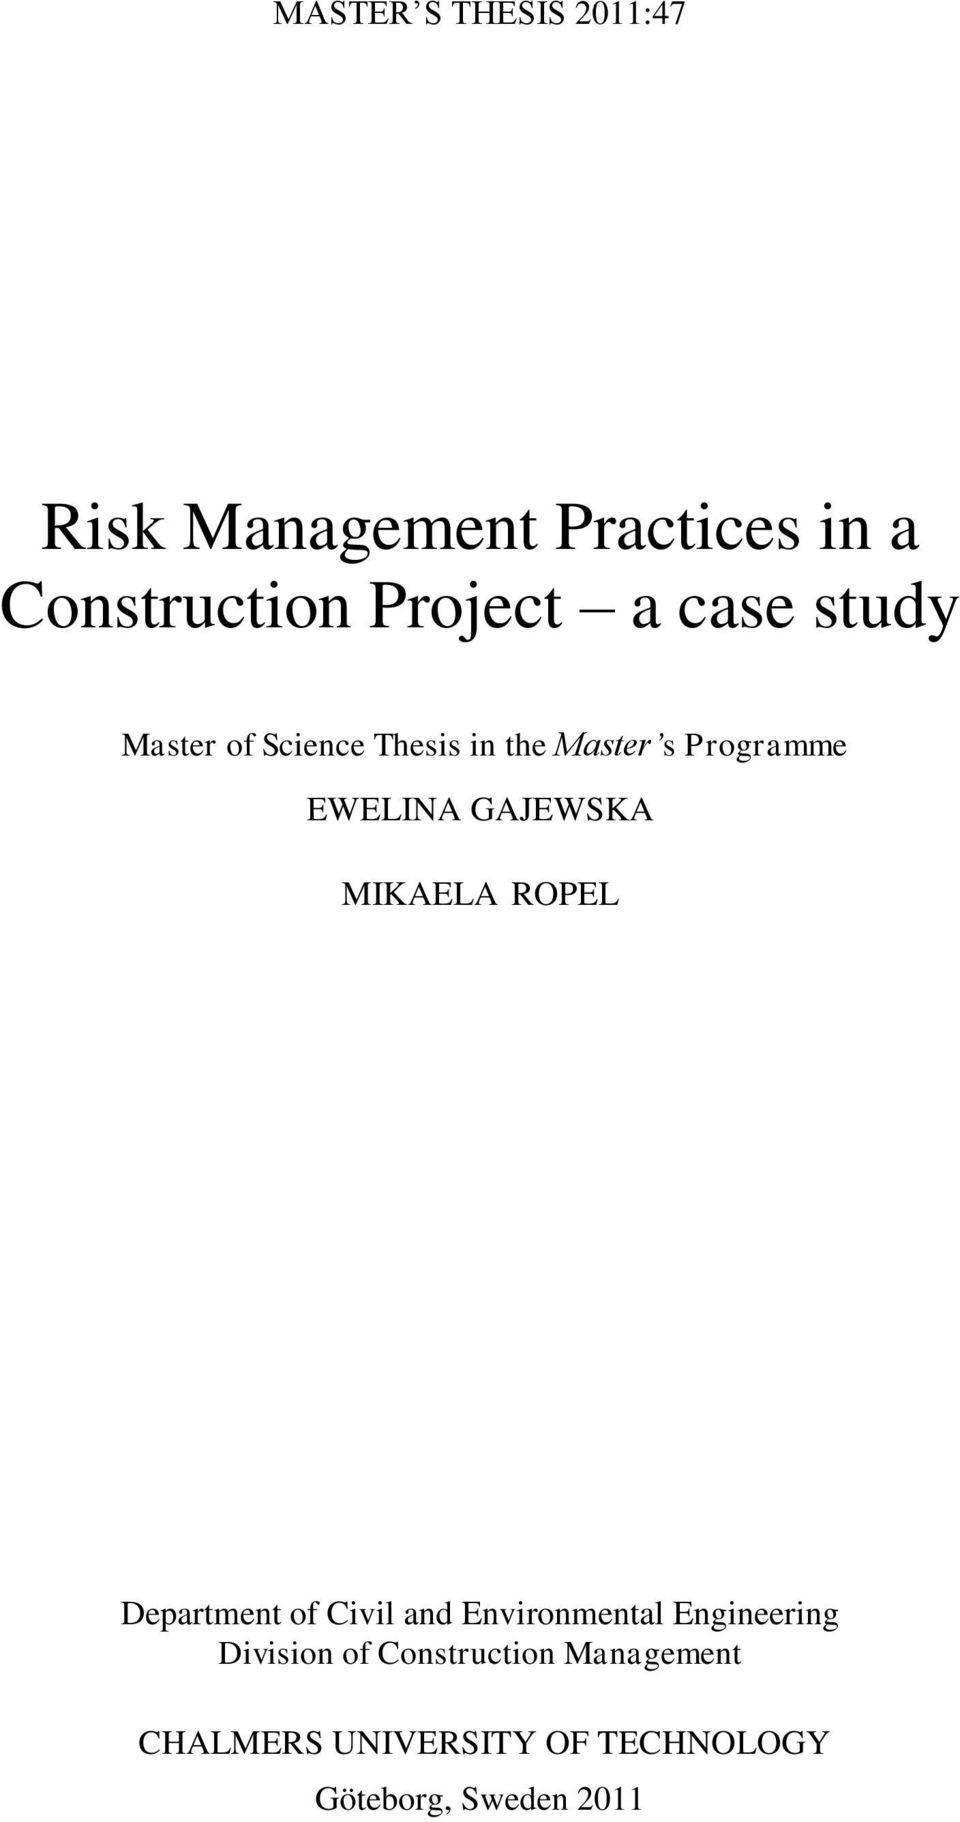 interaction design master thesis on risk